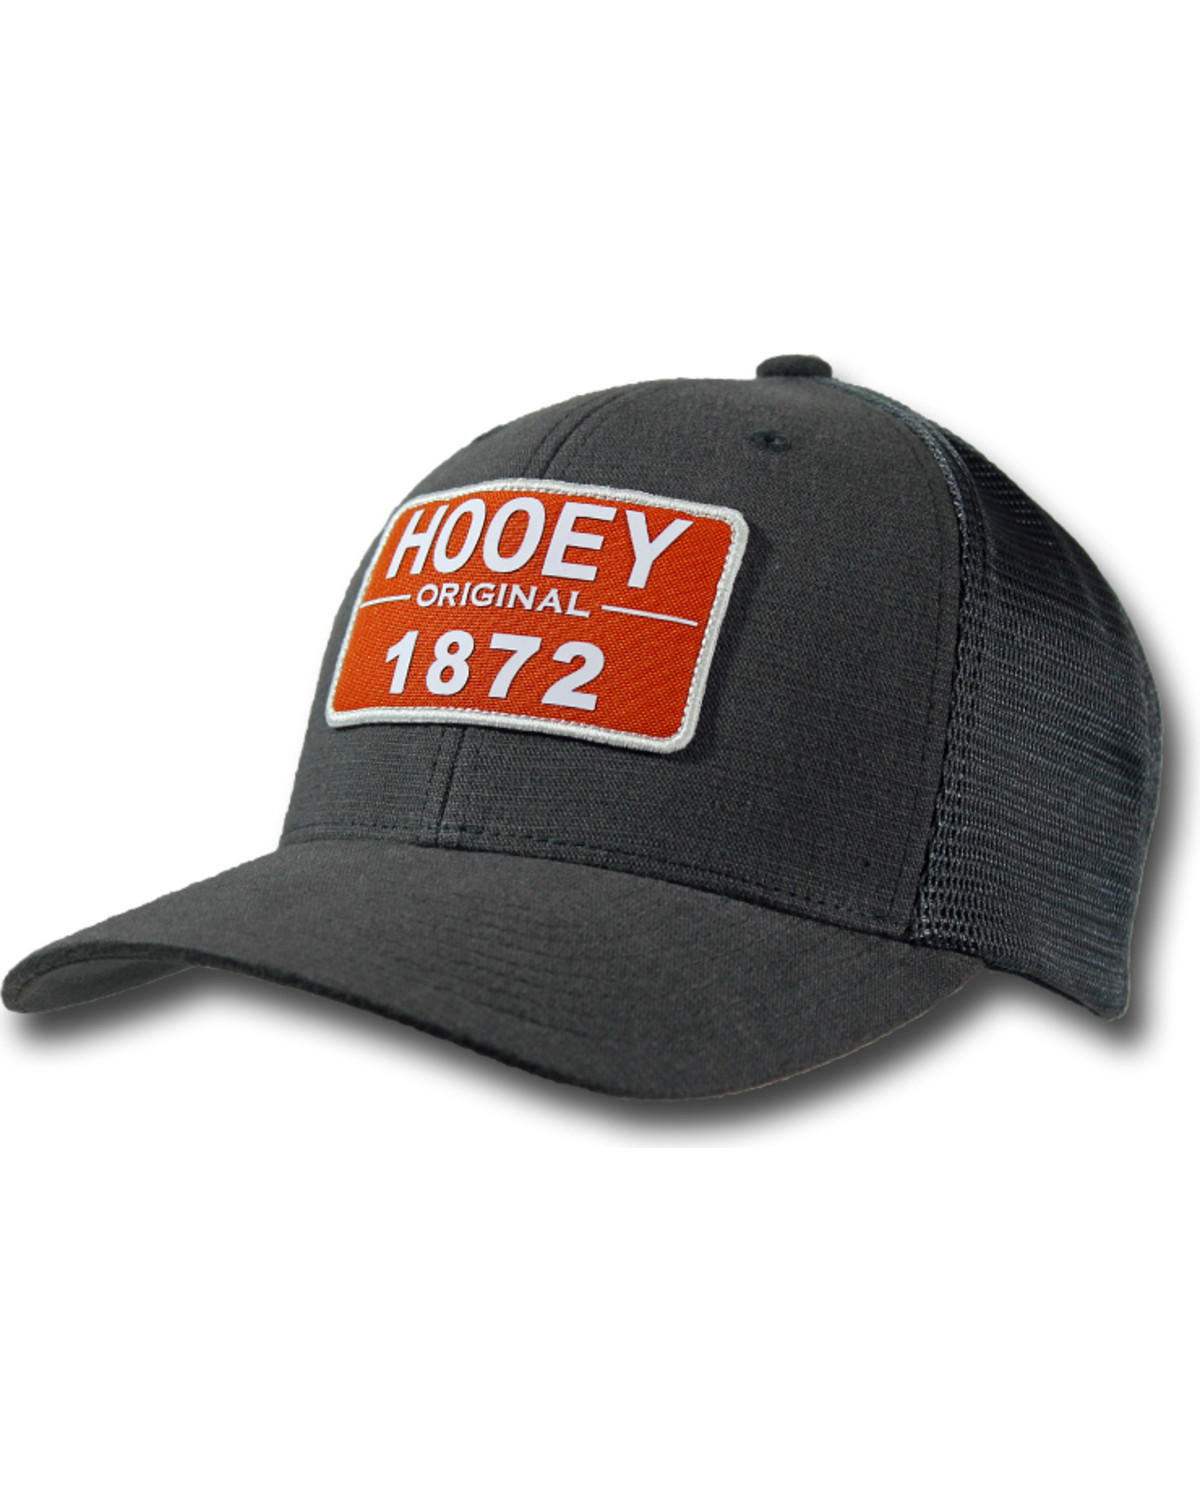 hot sale online 2cef1 c78e8 Hooey Men s Original Trucker Cap, Black, hi-res